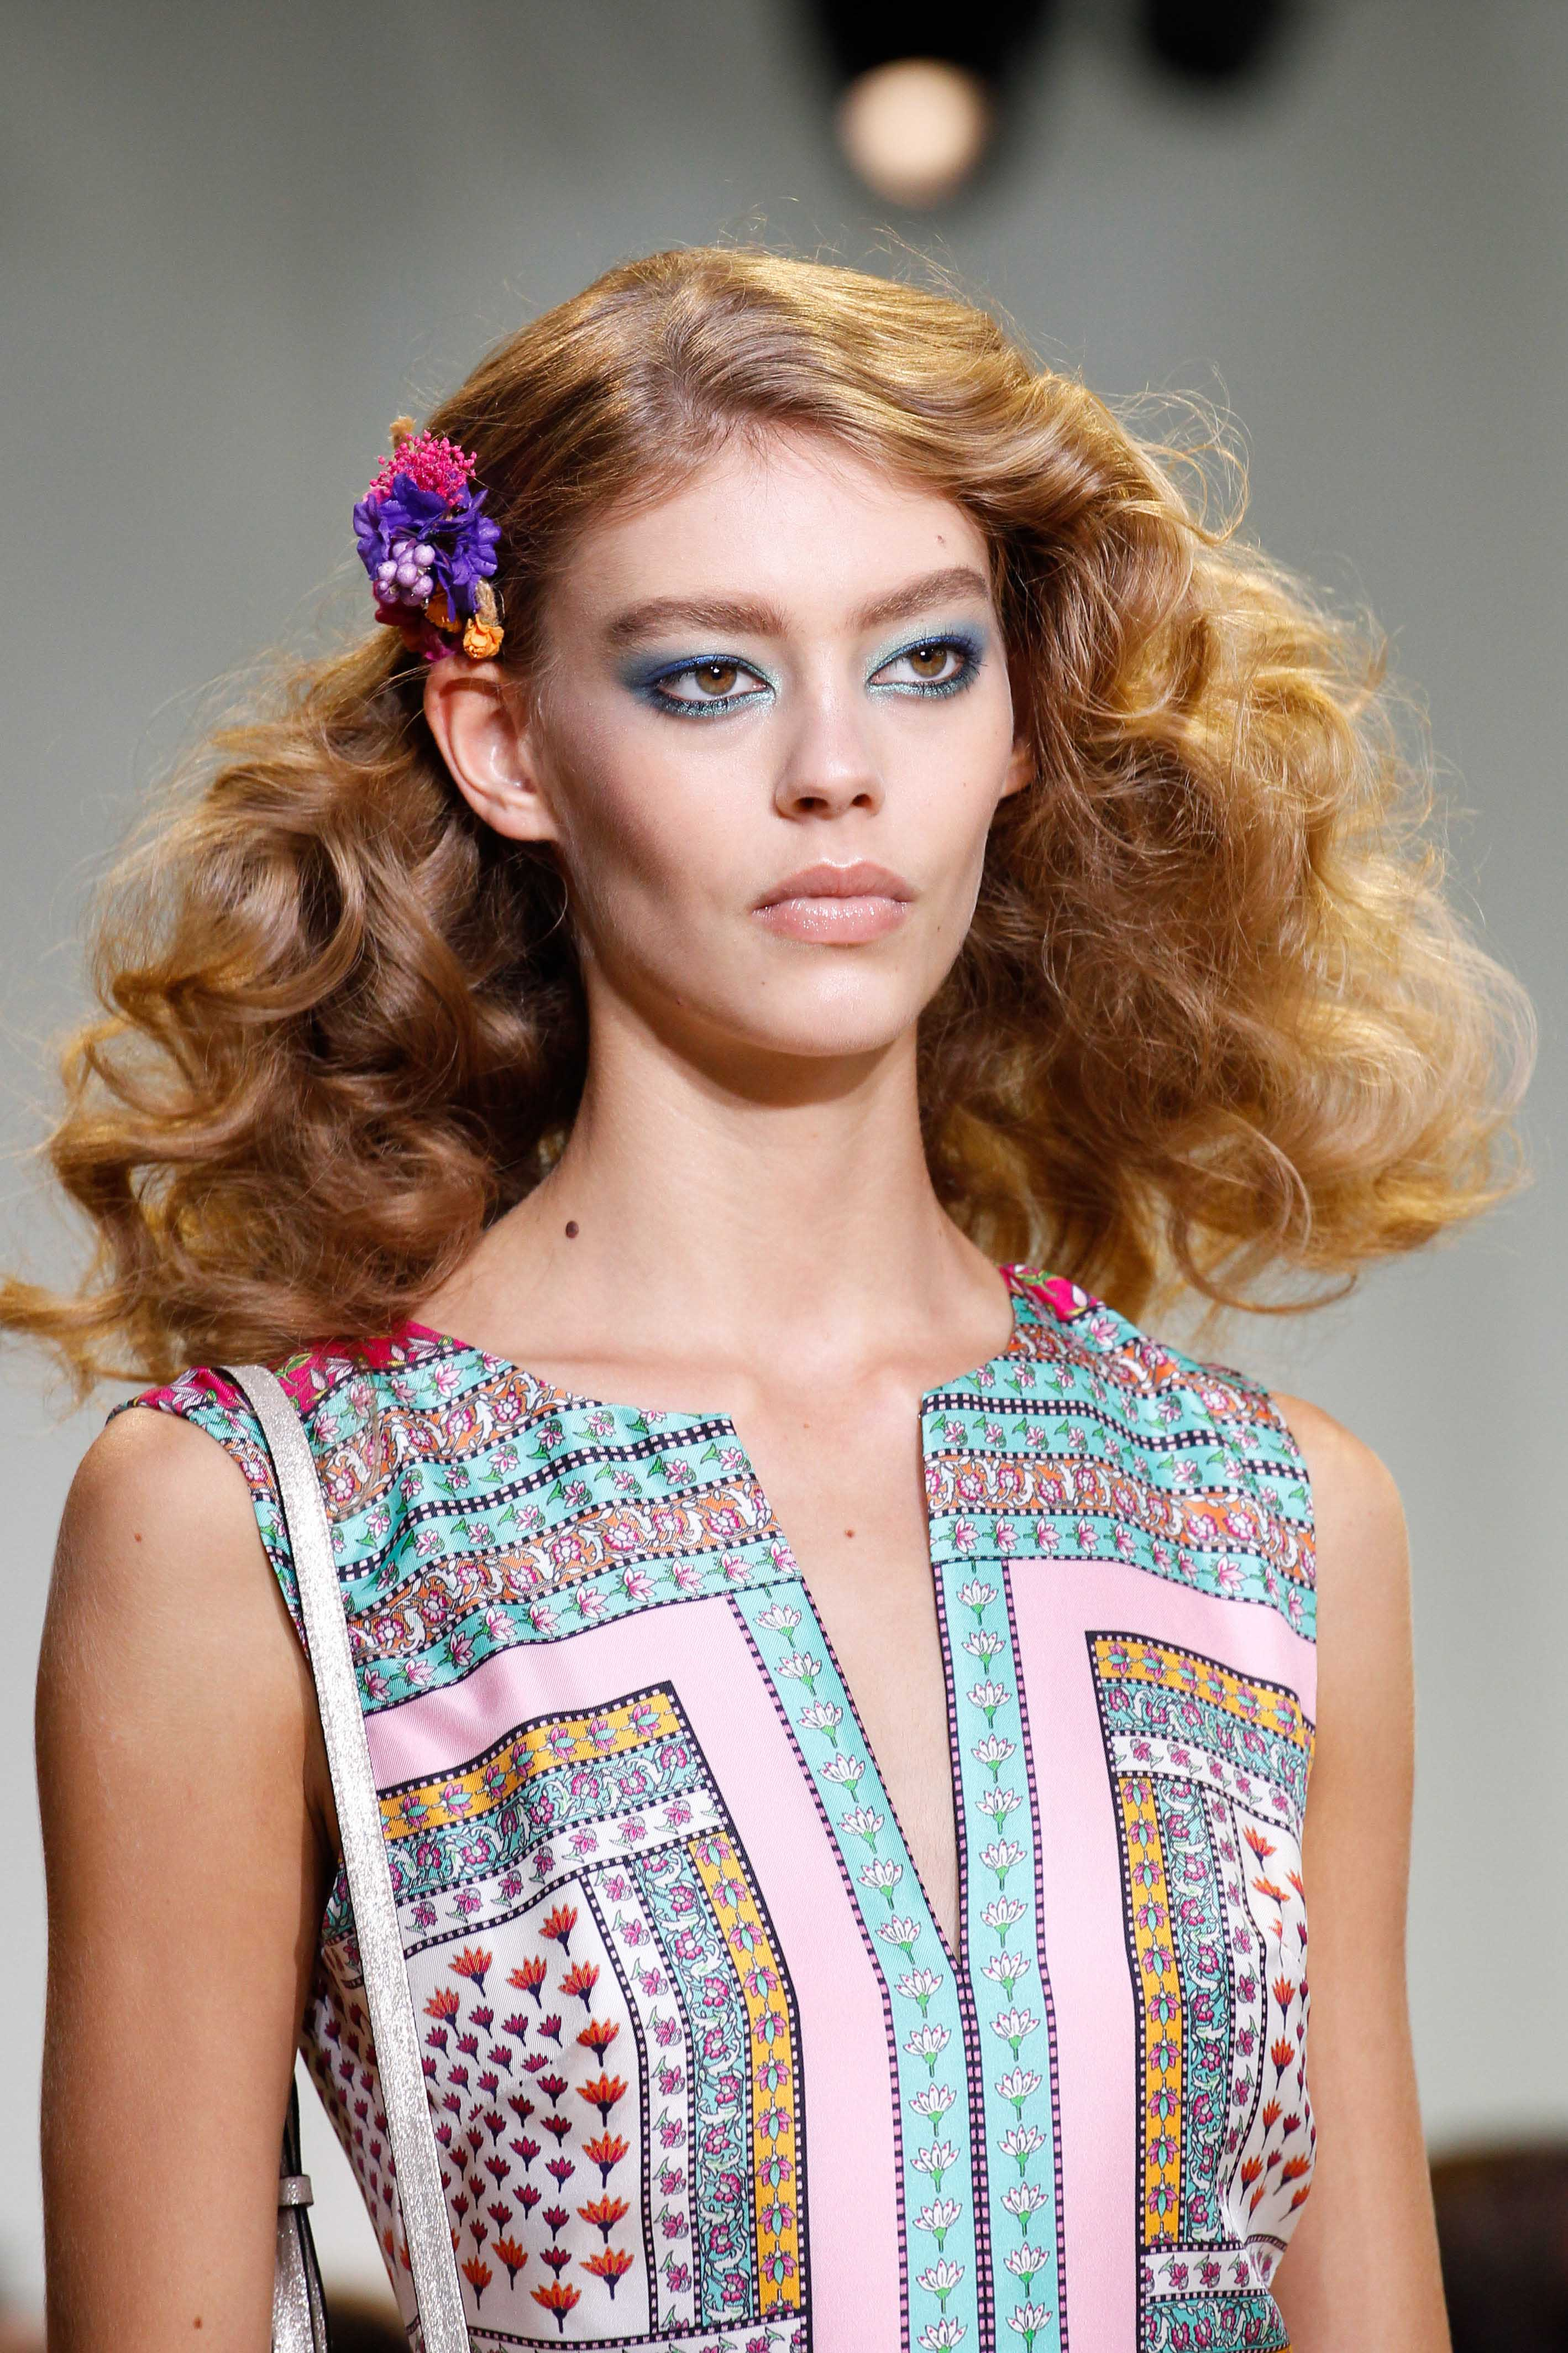 70s Hairstyles A Groovy Roundup Of Standout Styles